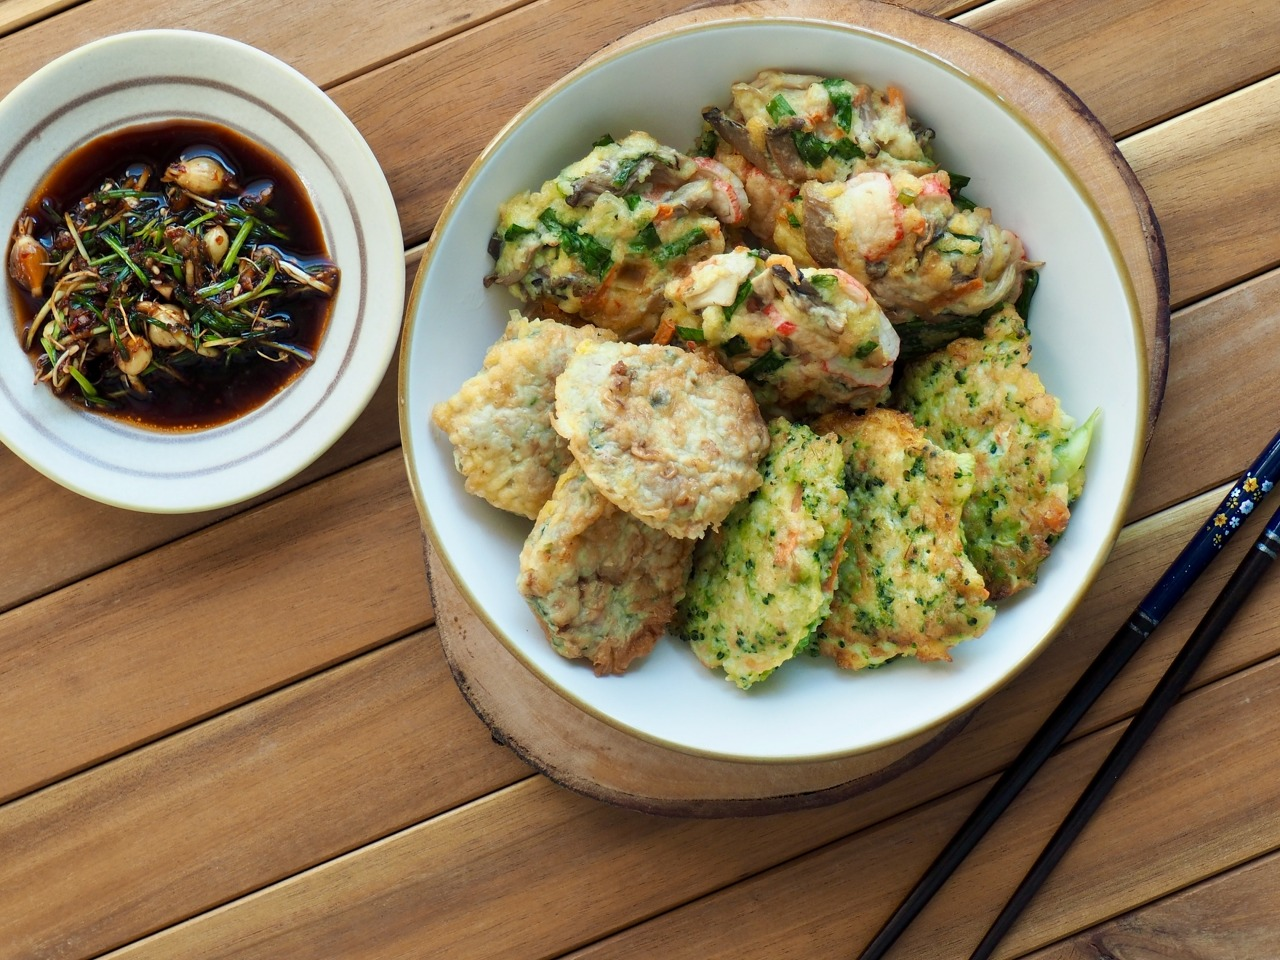 Assorted jeon, pan-fried battered food